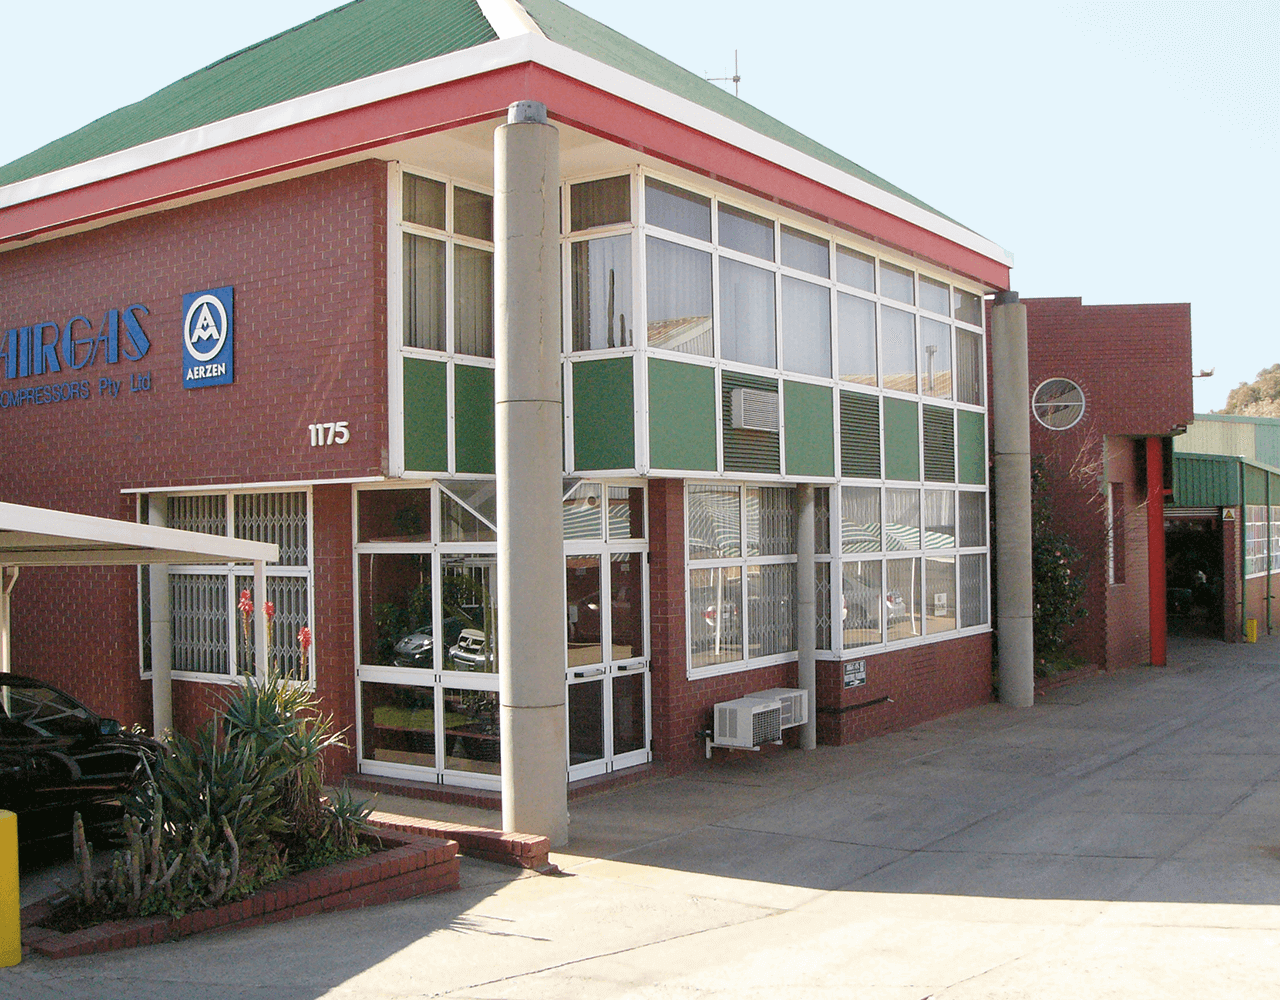 Picture of the building of the Airgas Compressor in South Africa